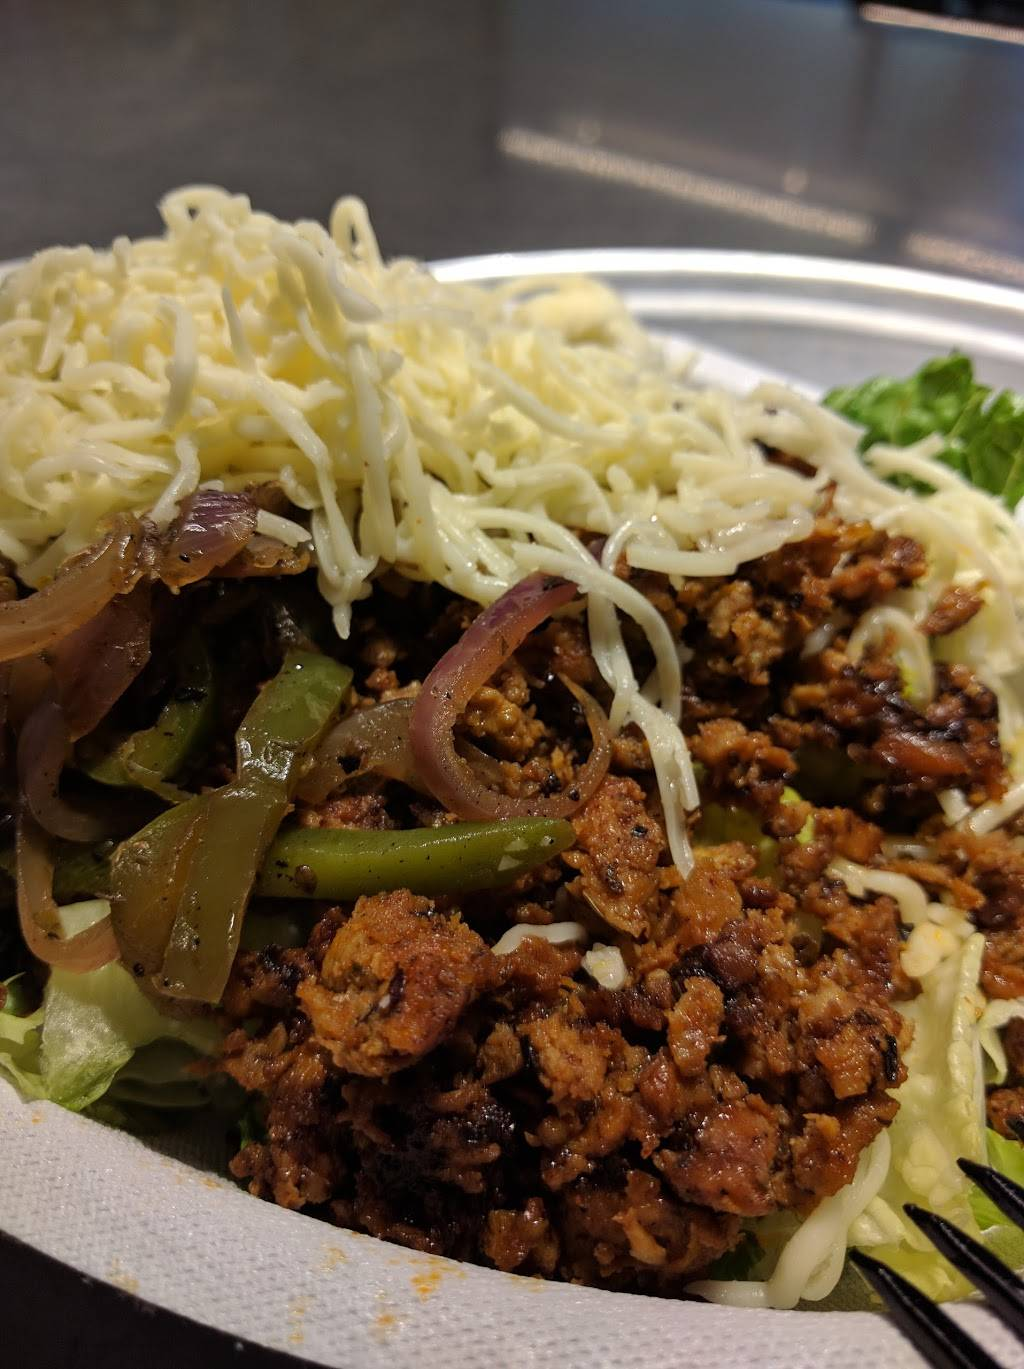 Chipotle Mexican Grill | restaurant | 40 NJ-17, East Rutherford, NJ 07073, USA | 2015495302 OR +1 201-549-5302